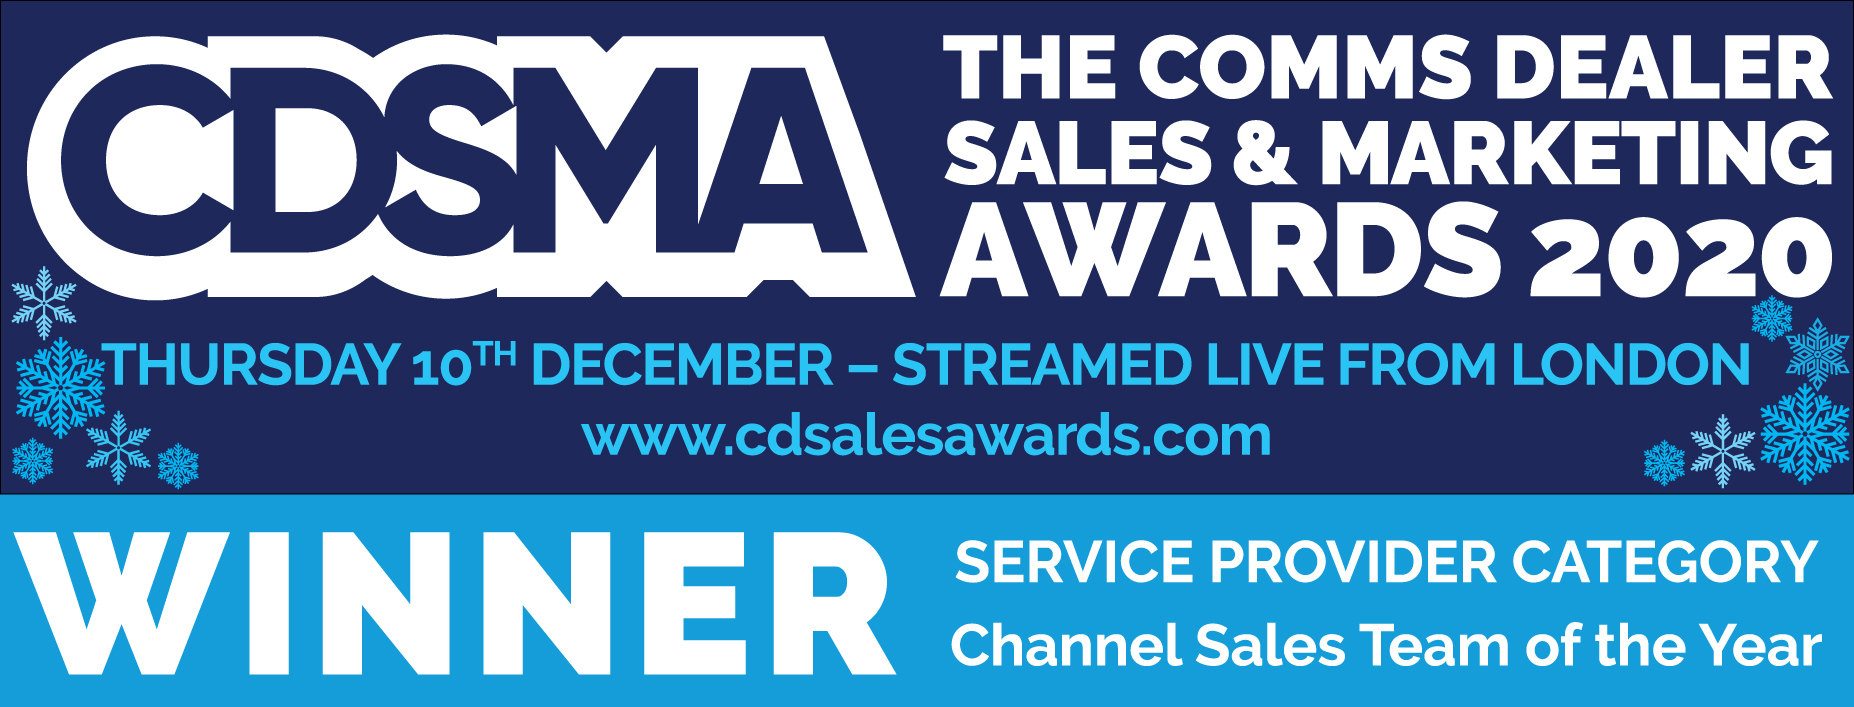 Comms Dealers Sales & Marketing Awards 2020